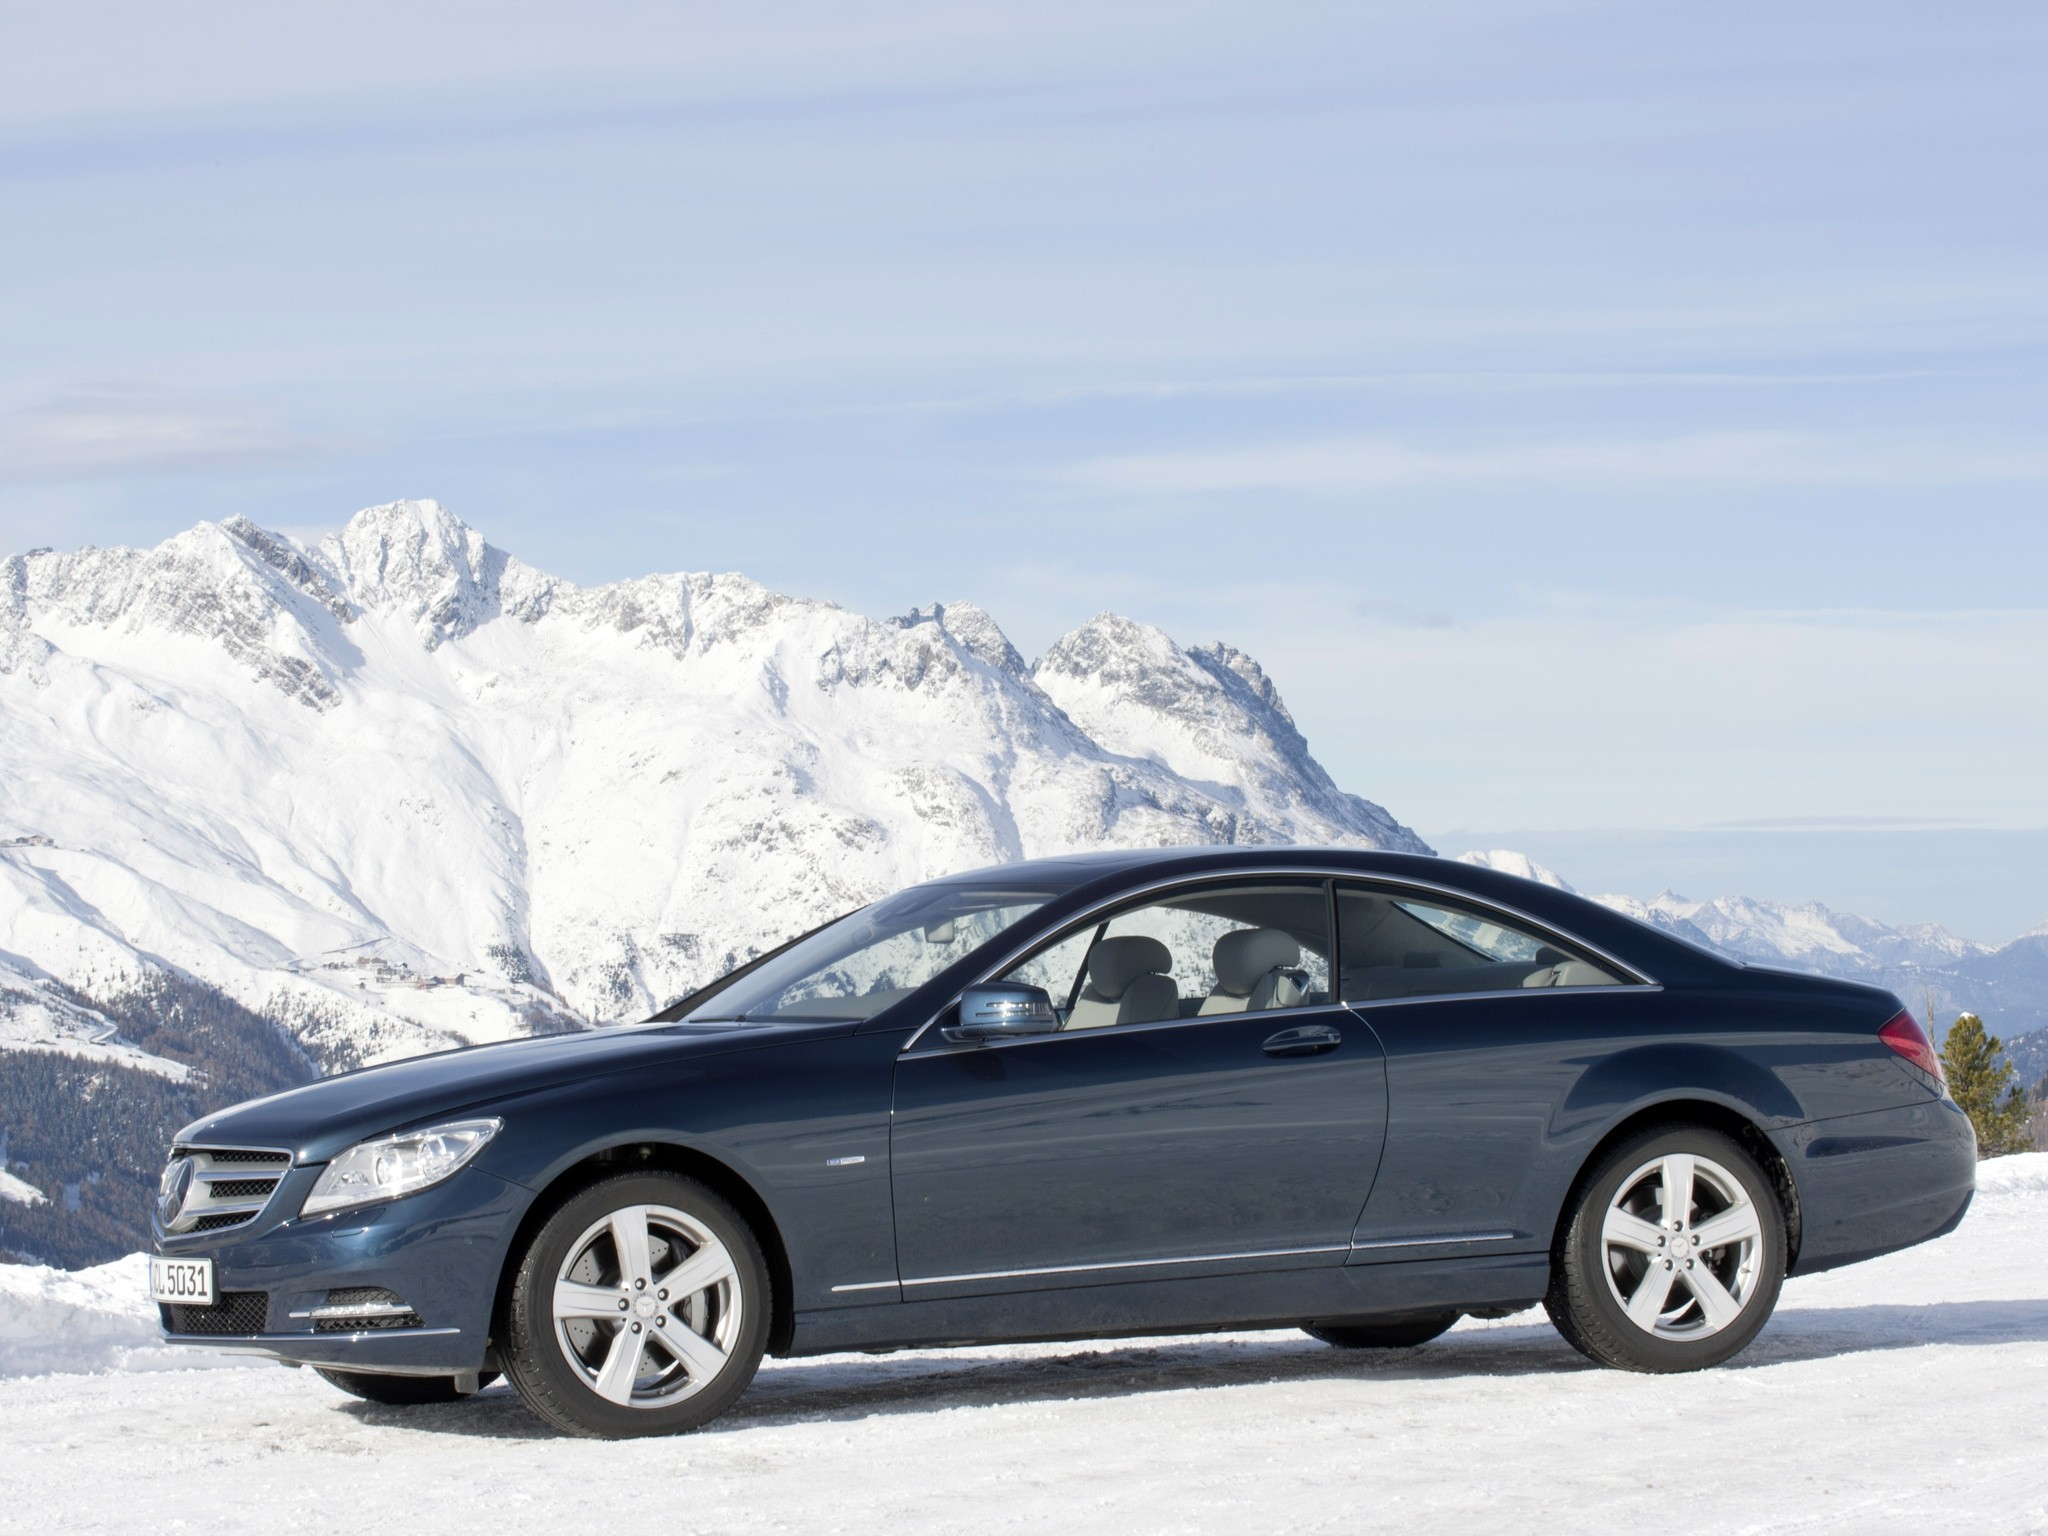 Mercedes On Snow